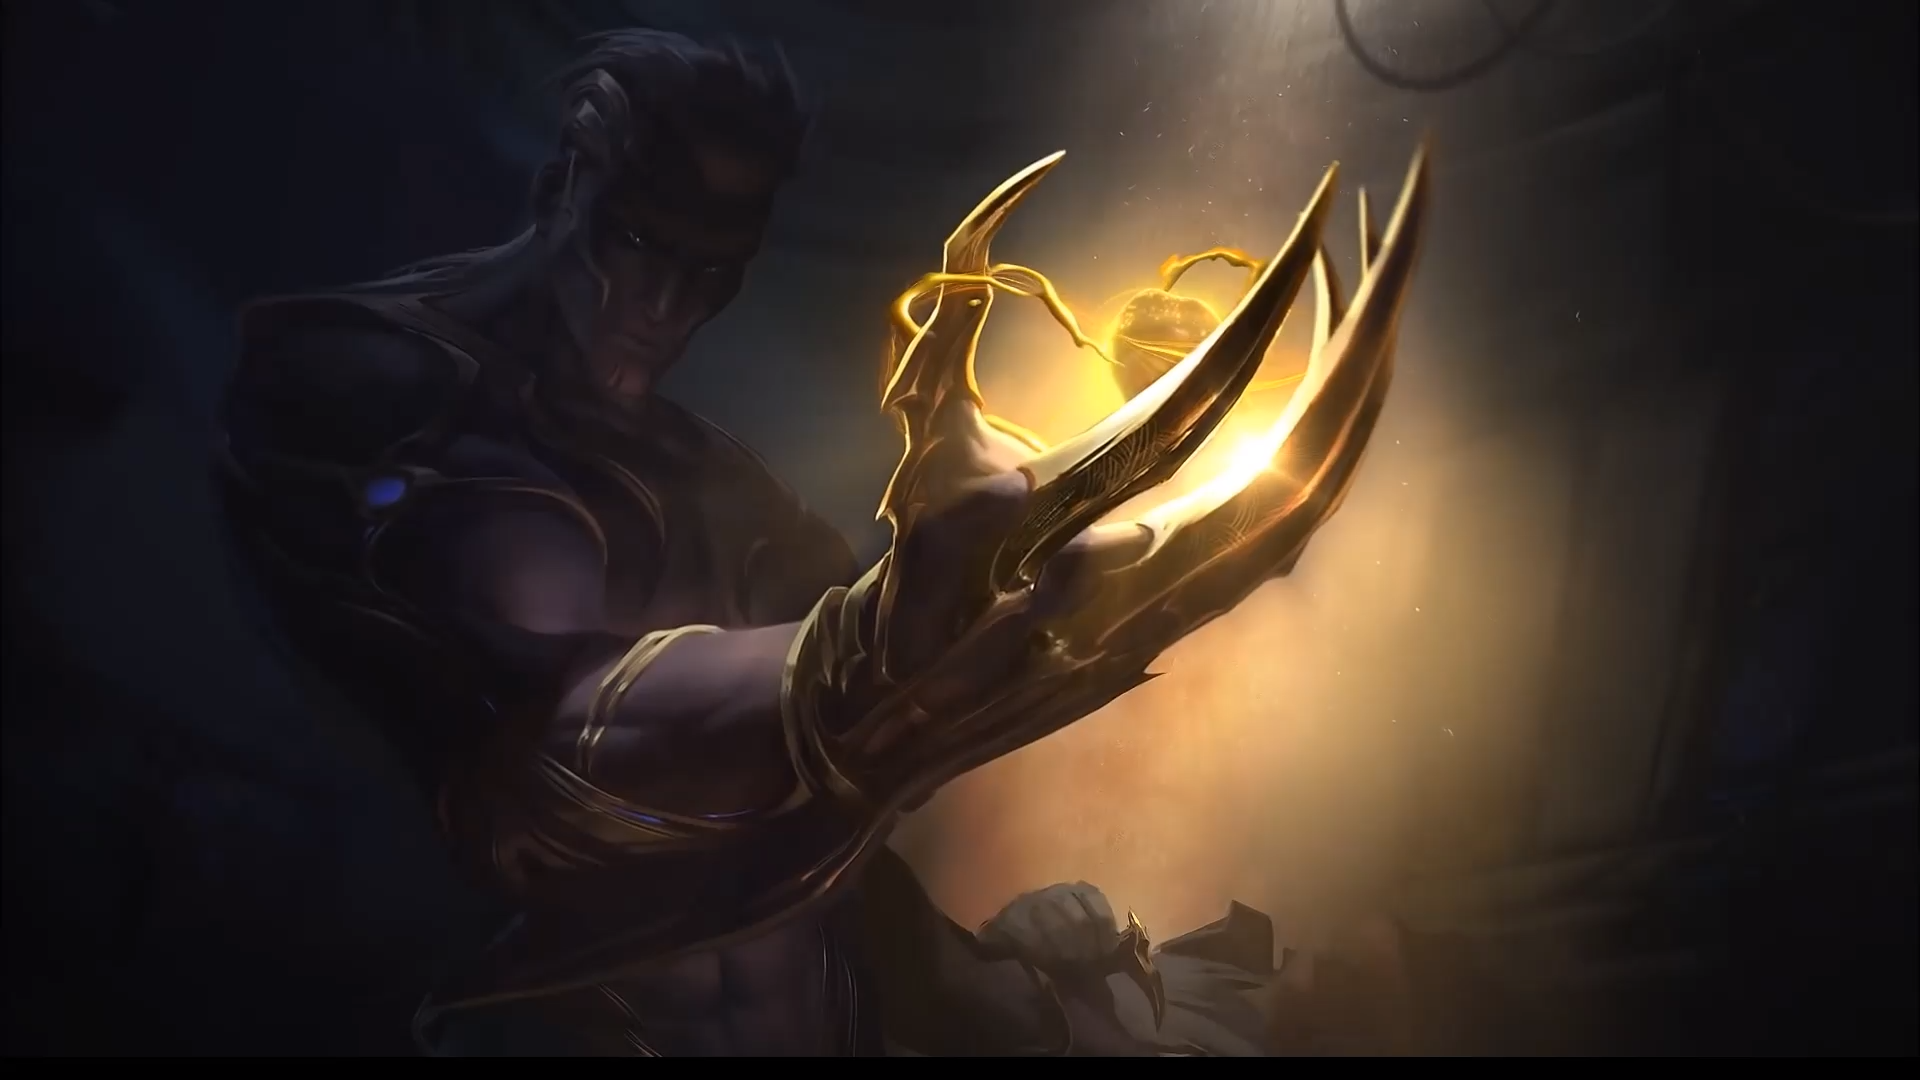 League Of Legends Galaxy Slayer Ze Wallpaper In 2020 League Of Legends Video Lol League Of Legends Gaming Wallpapers